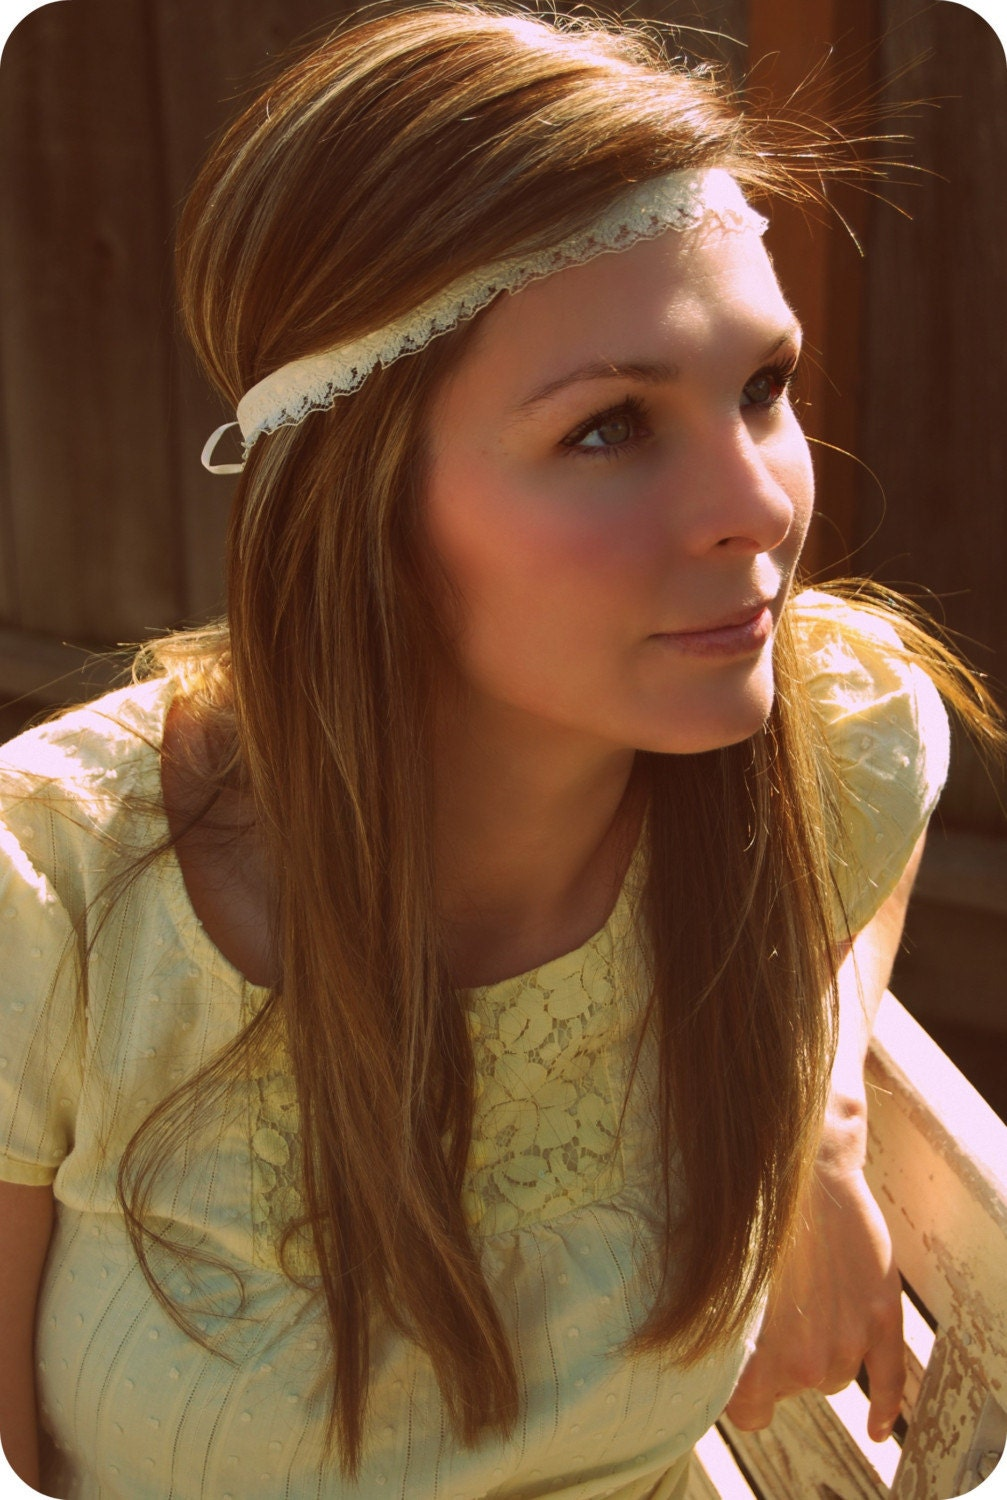 Vintage Lace Hippie Headband From peacelovevintageshop